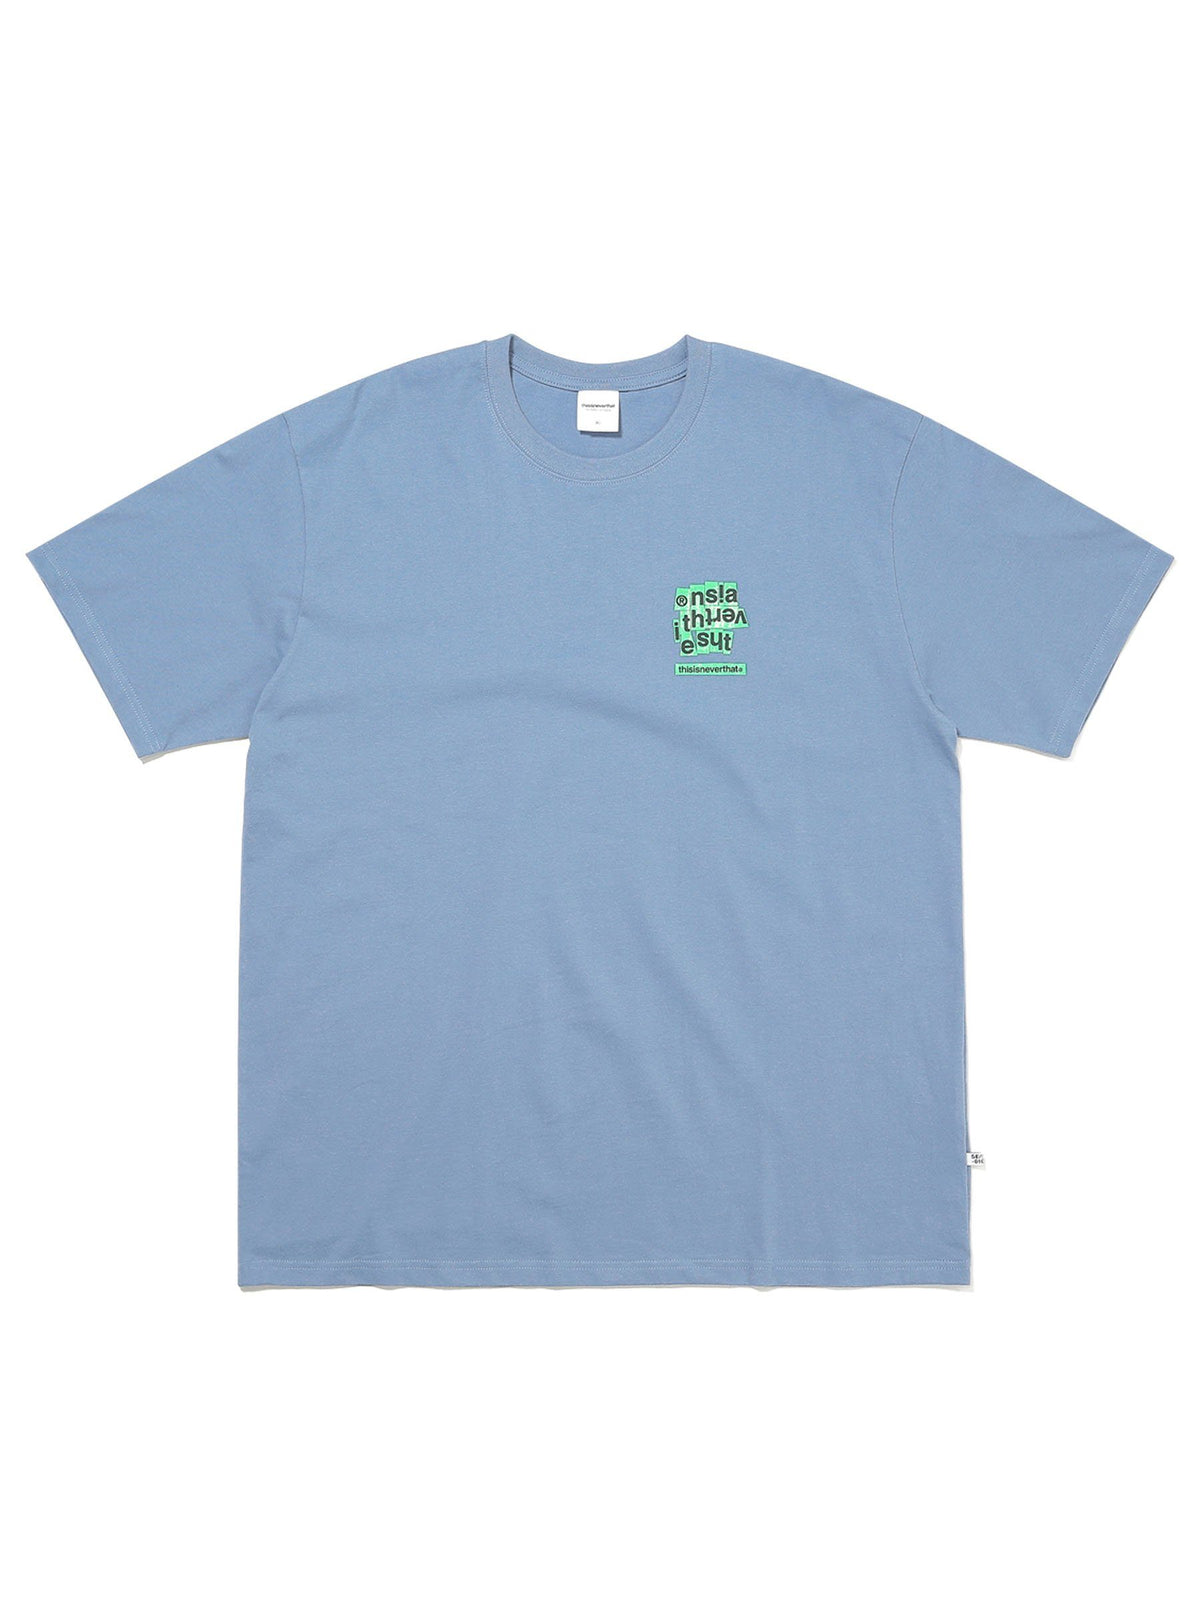 CNP-Logo Tee - thisisneverthat